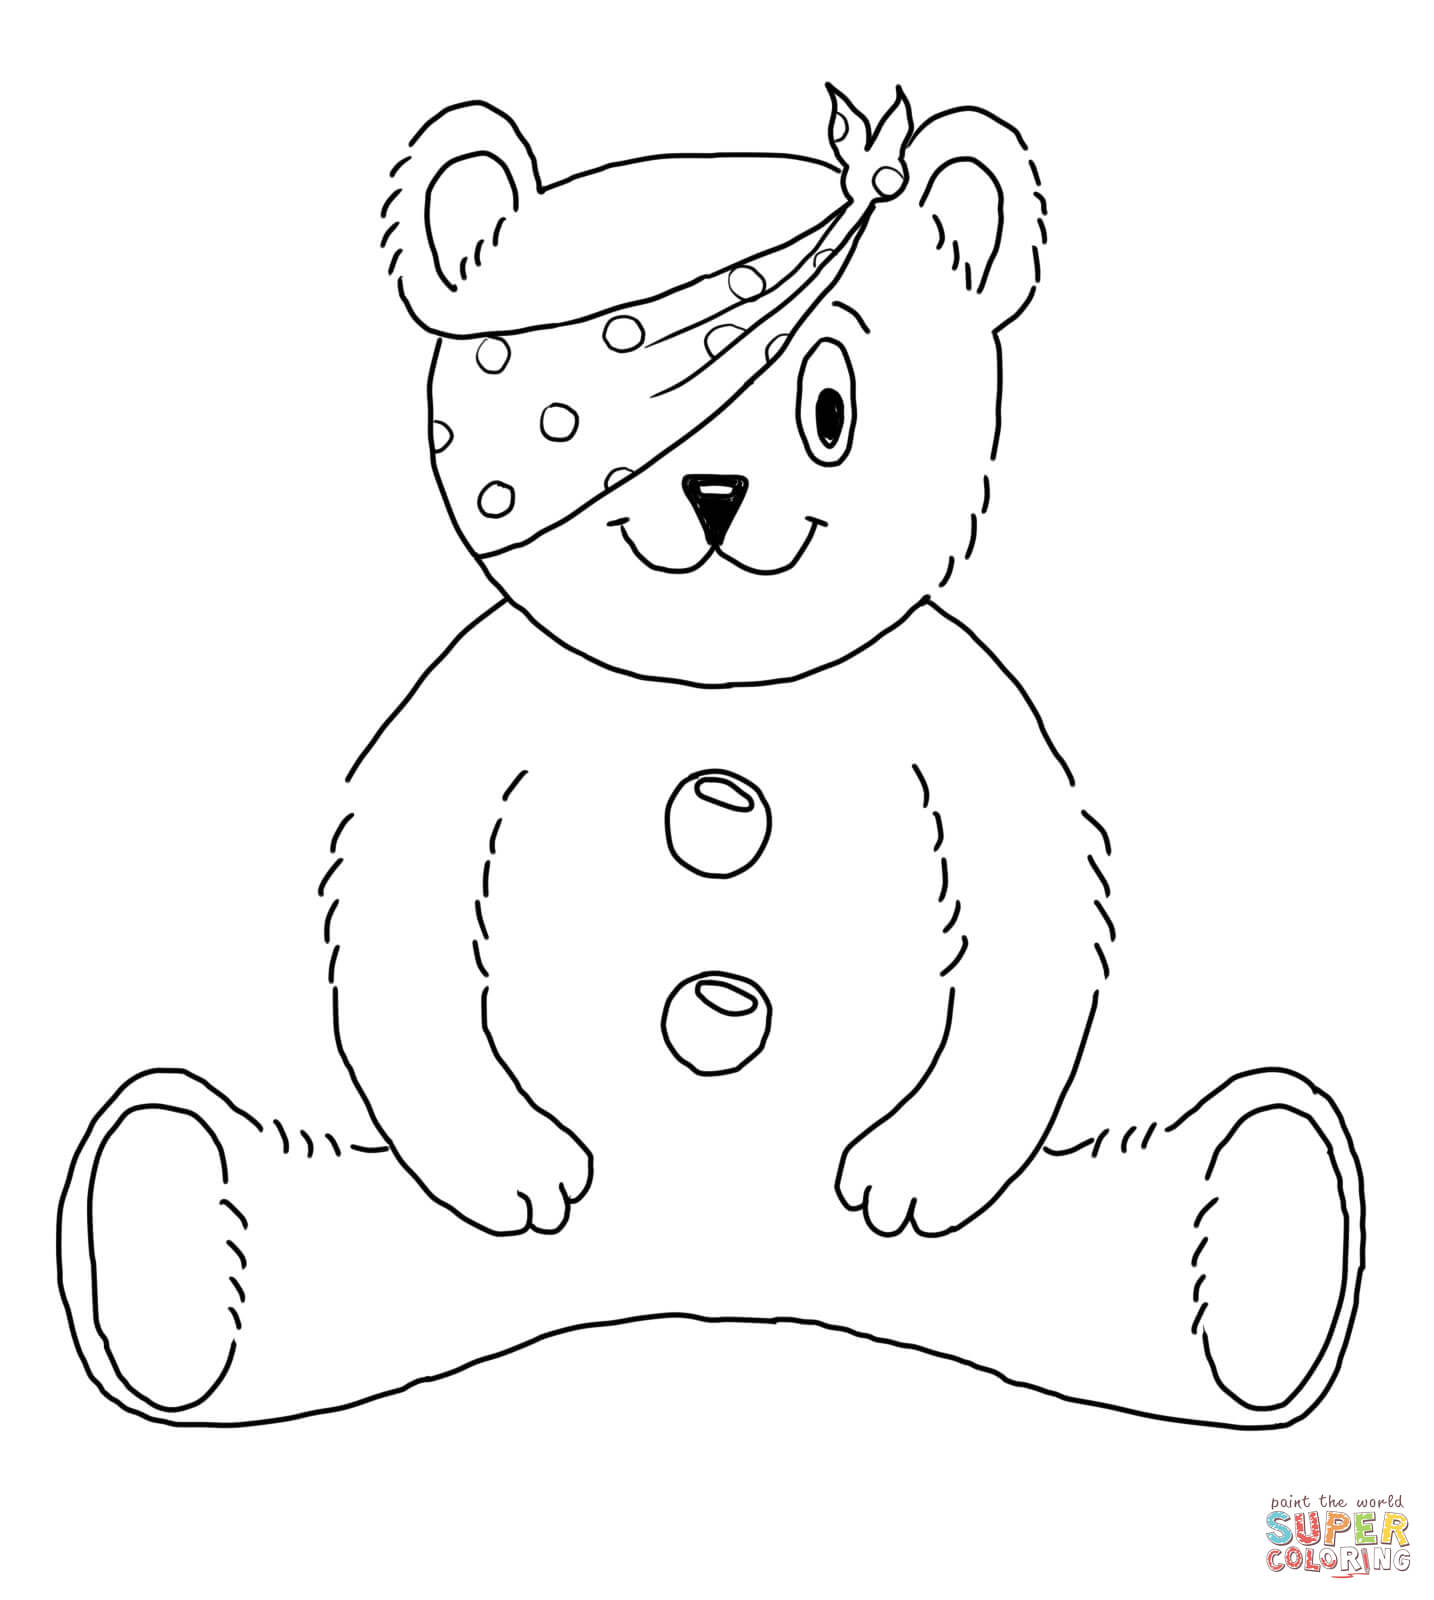 Children In Need Mascot Coloring Page